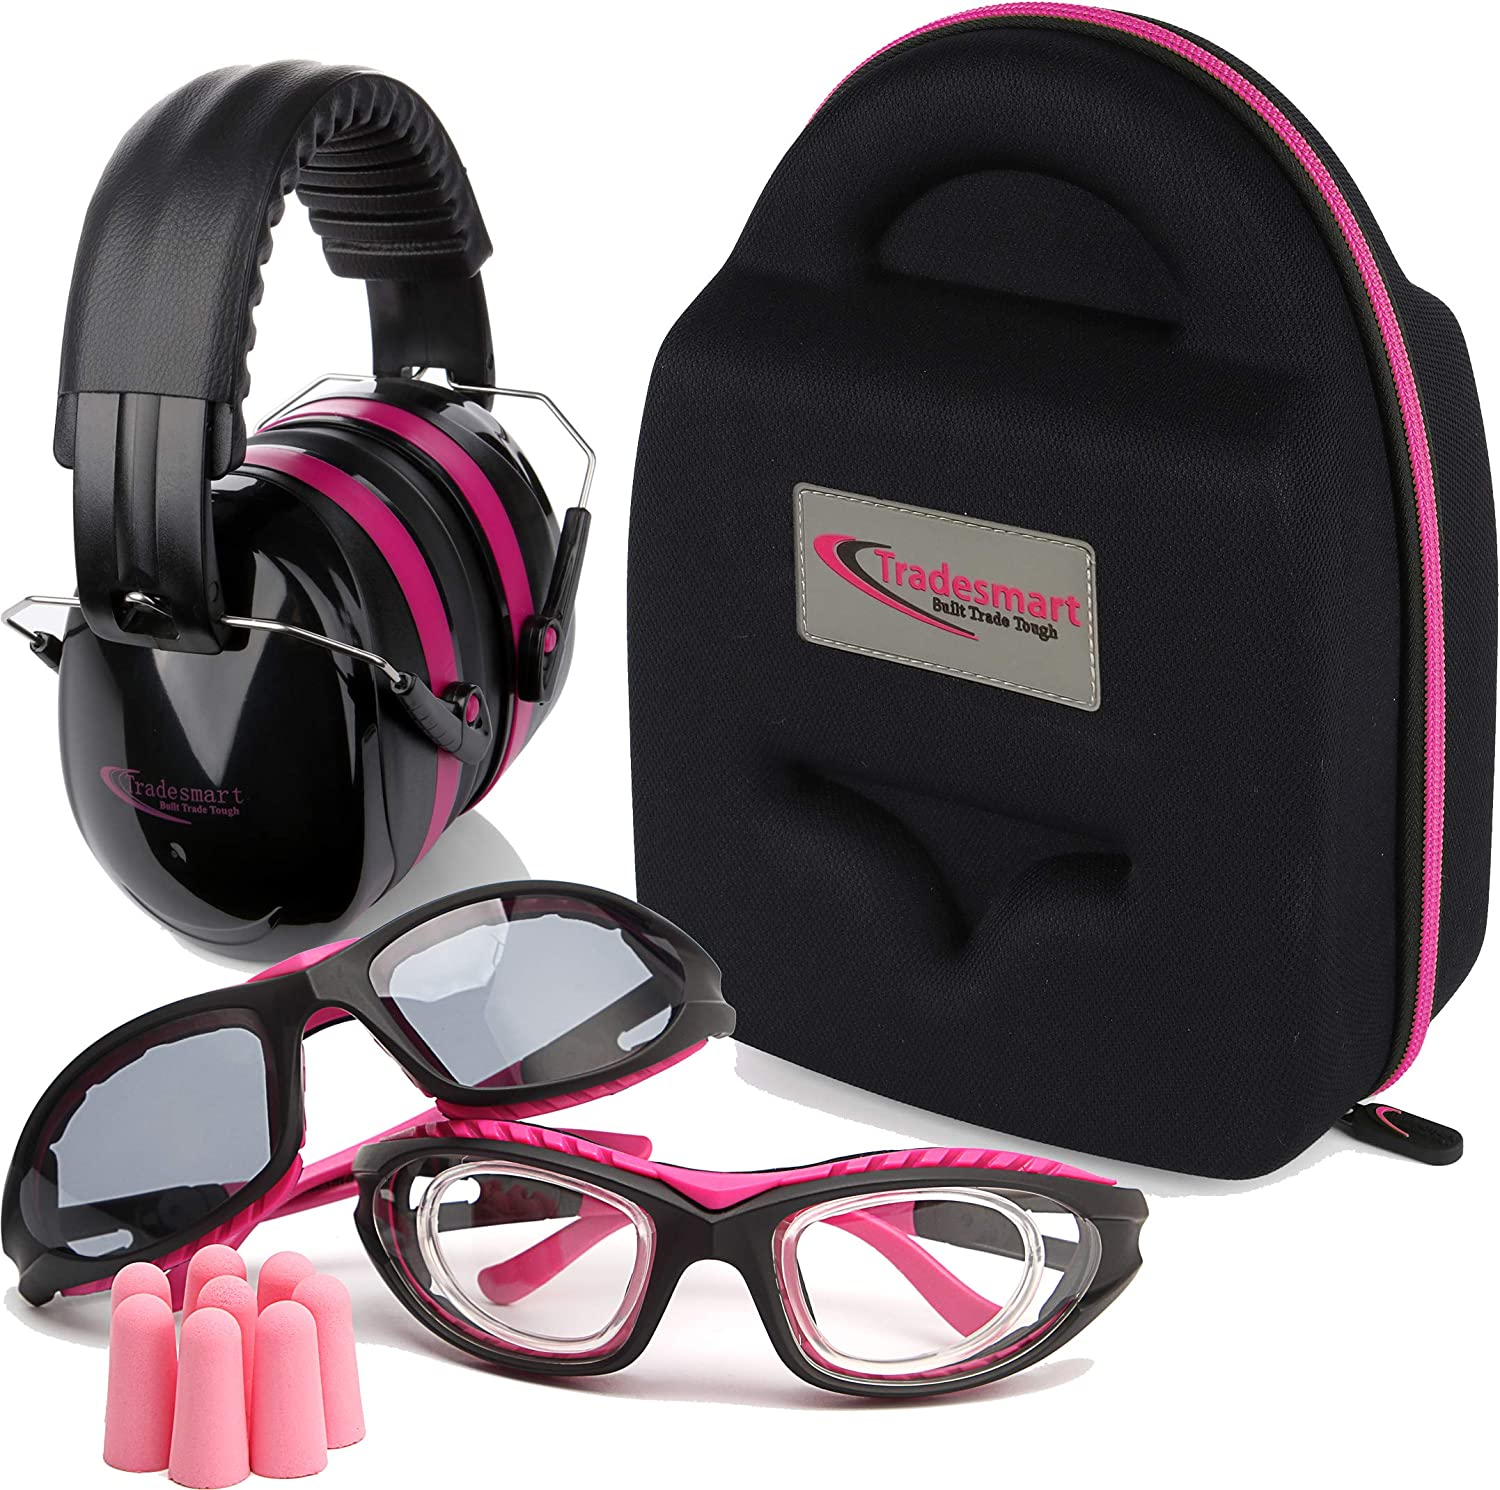 TRADESMART Shooting Range Earmuffs and Glasses – Safety Ear and Eye Protection